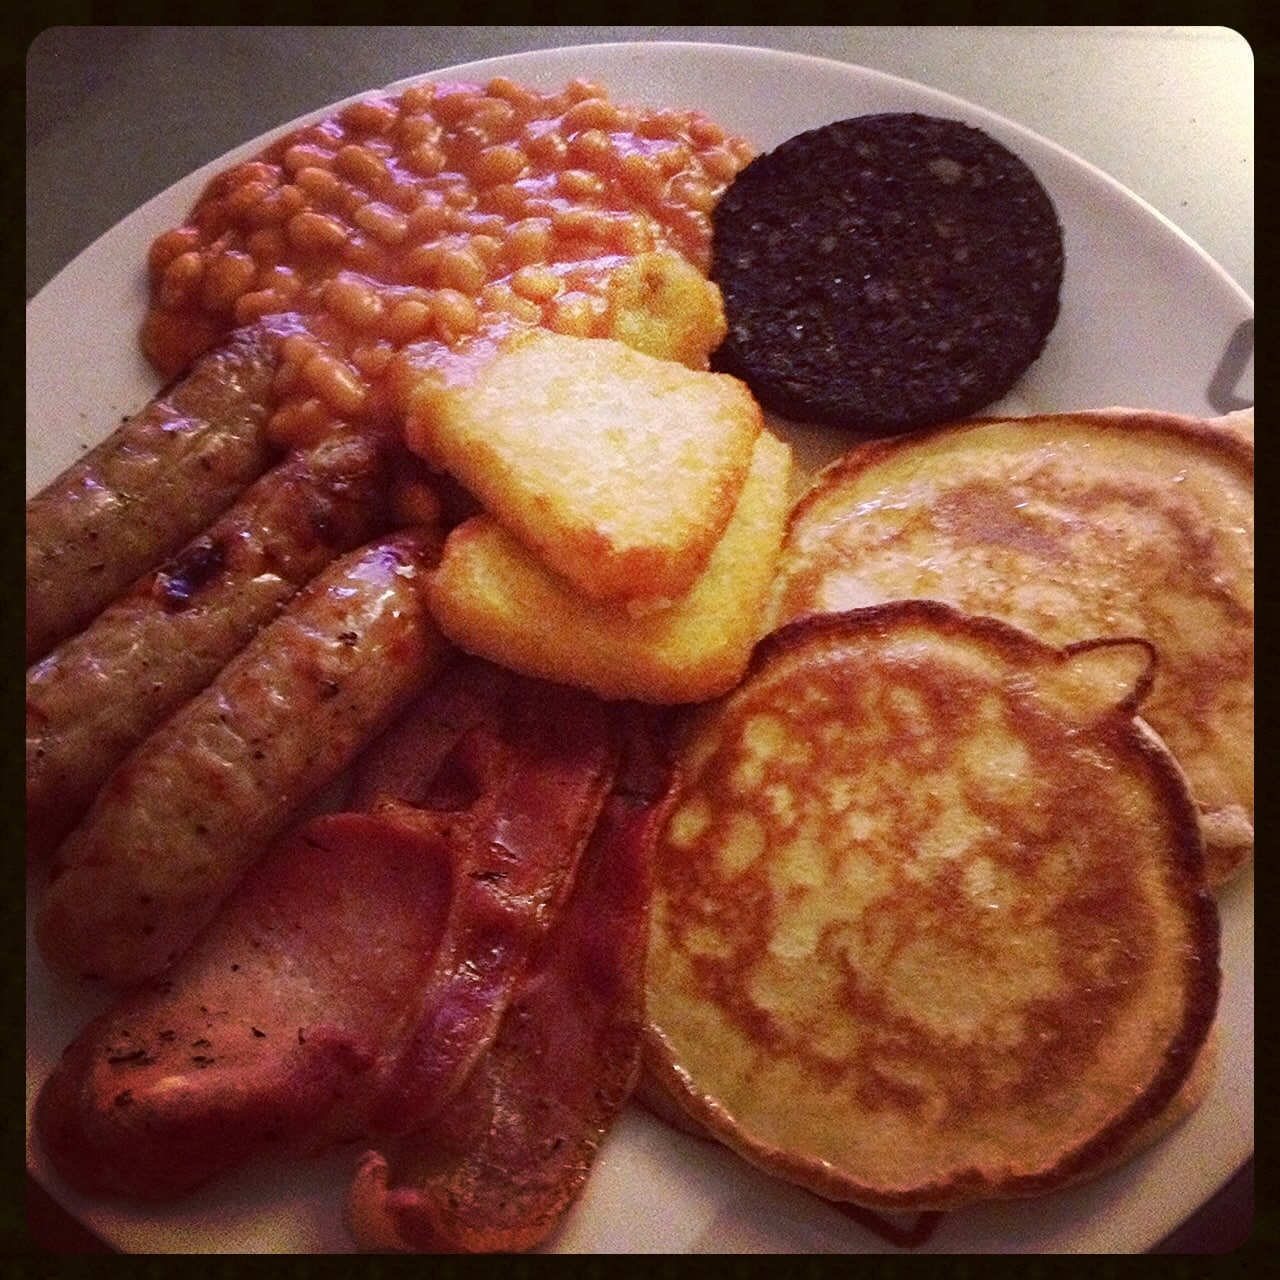 American fry up